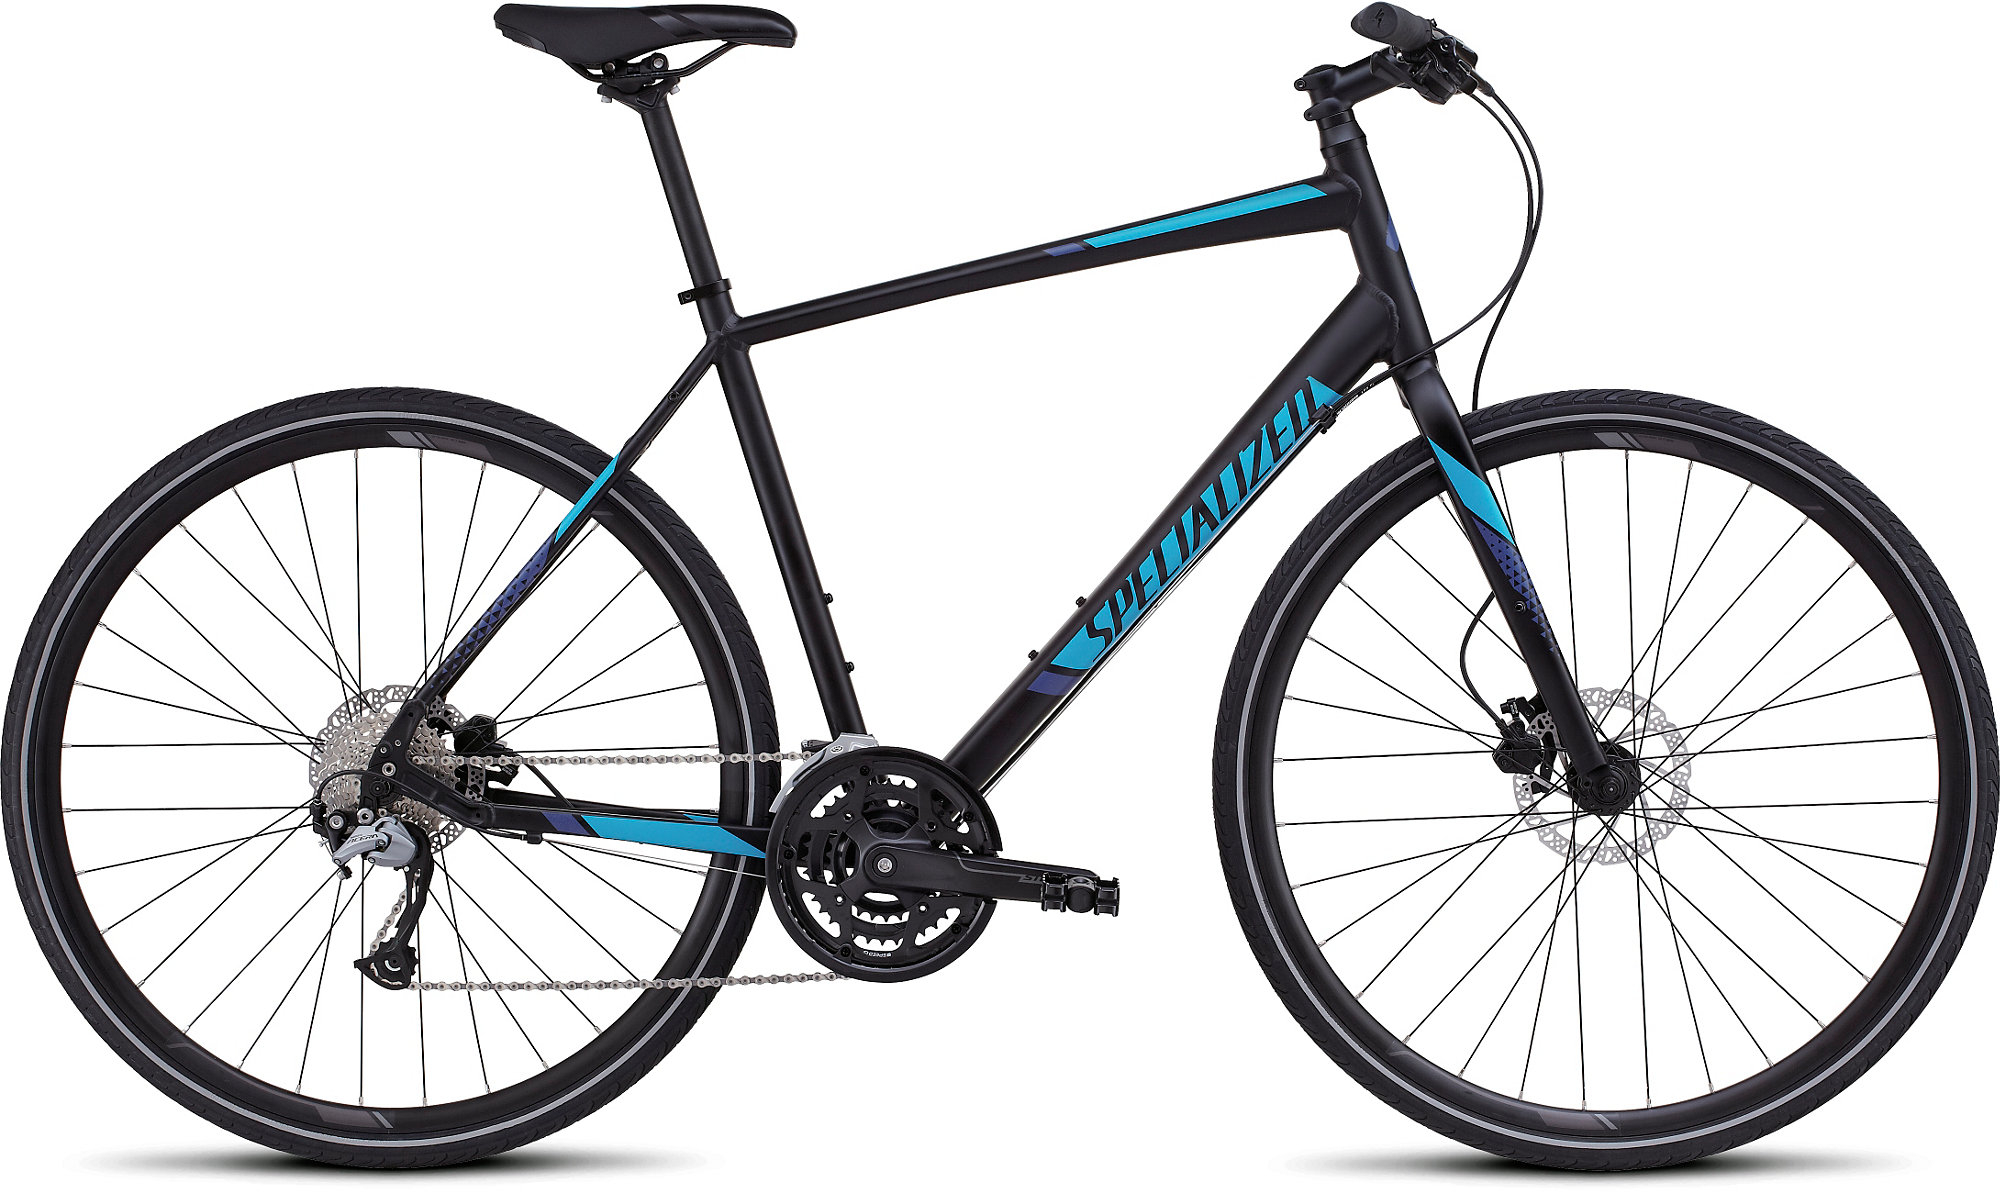 0ad8fe348f2 2016 Specialized SIRRUS SPORT DISC - Specialized Concept Store